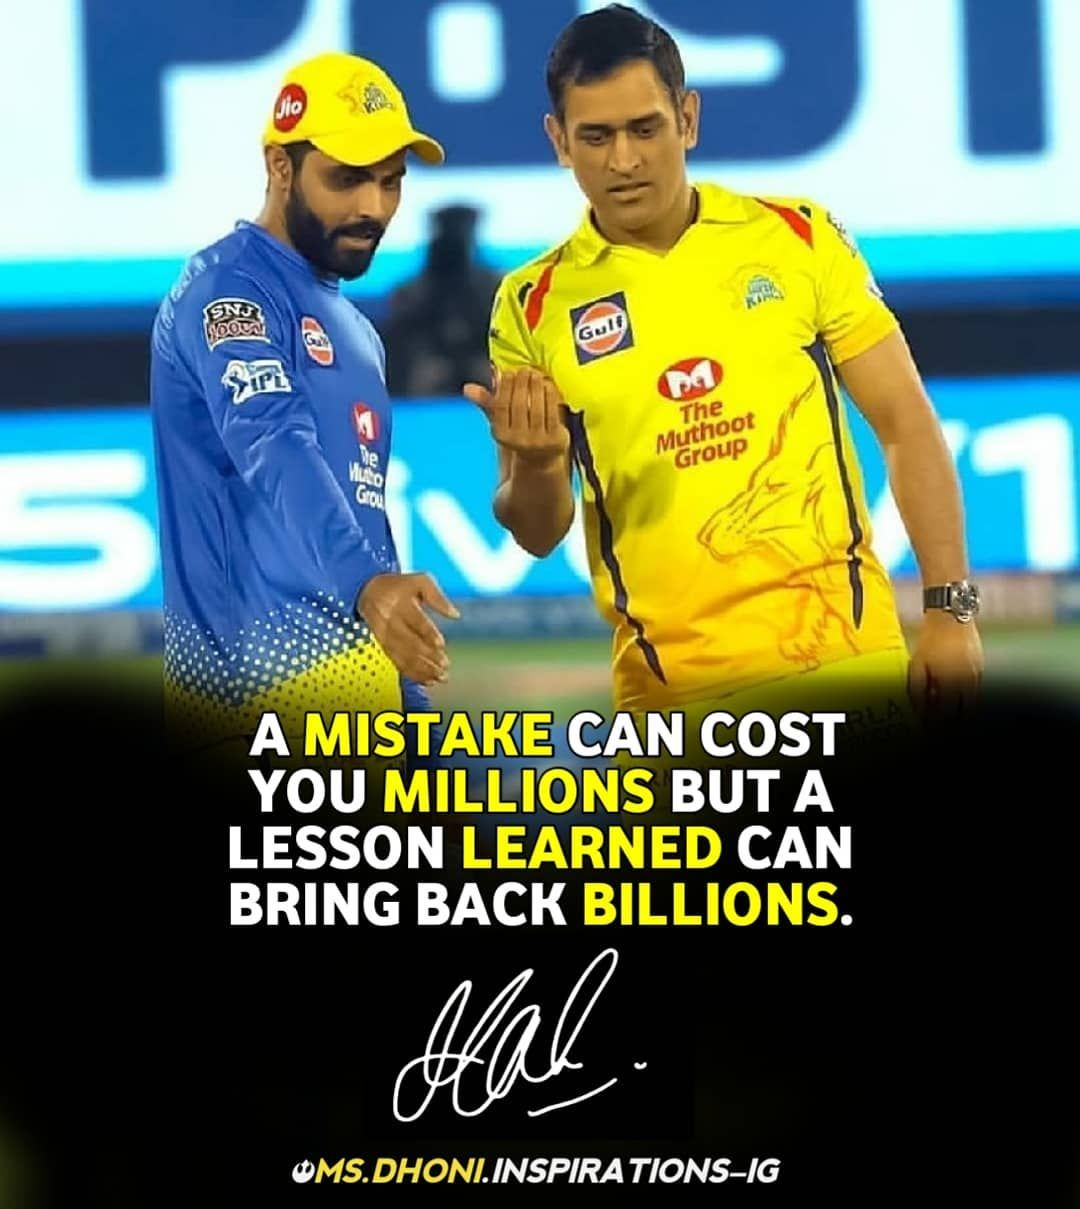 Pin By Jatadhar Sara On Motivation In 2020 Dhoni Quotes Ms Dhoni Photos Inspirational Quotes About Success